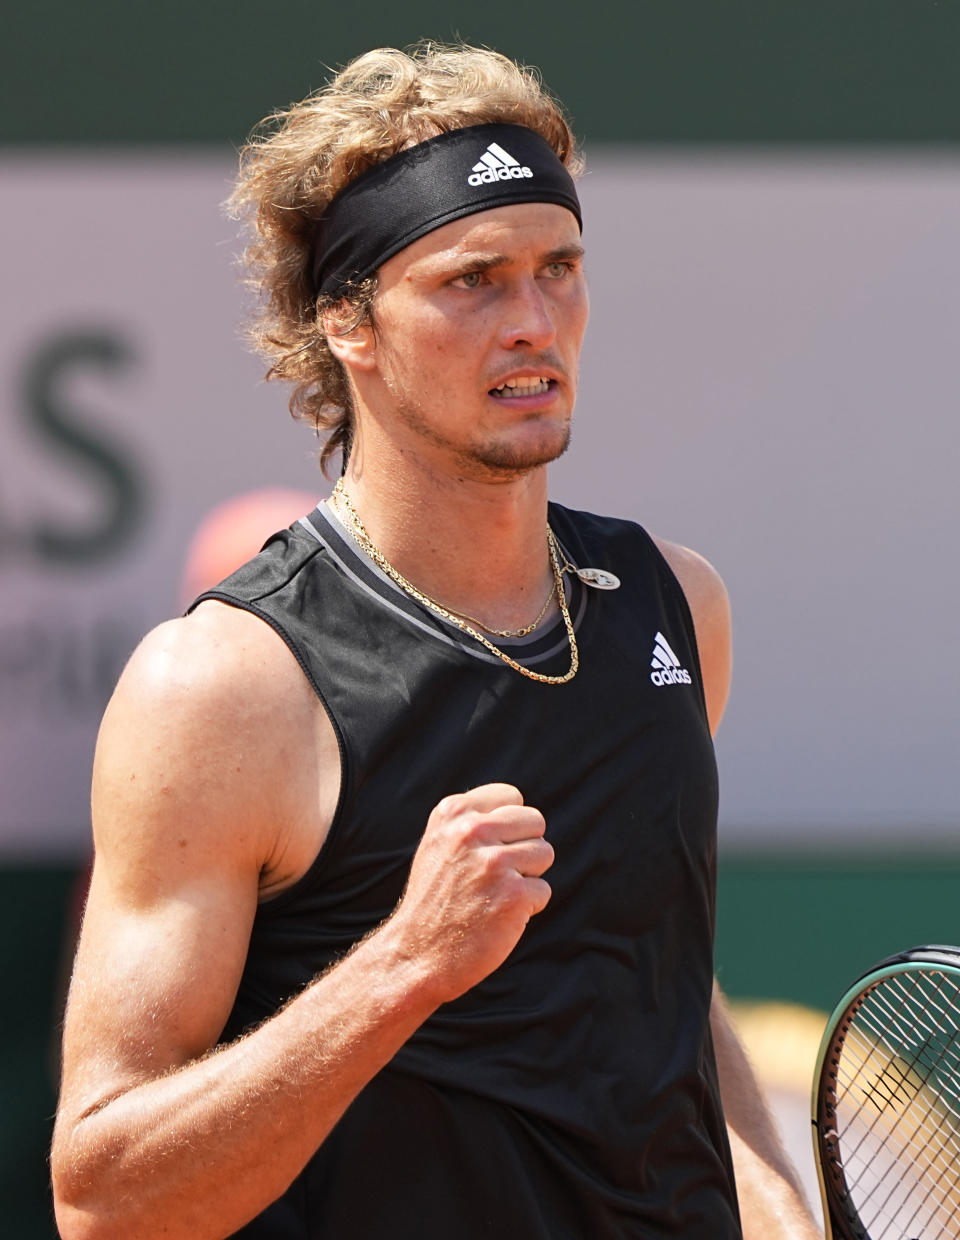 Germany's Alexander Zverev celebrates after winning a point against Russia's Roman Safiullin during their second round match on day four of the French Open tennis tournament at Roland Garros in Paris, France, Wednesday, June 2, 2021. (AP Photo/Michel Euler)